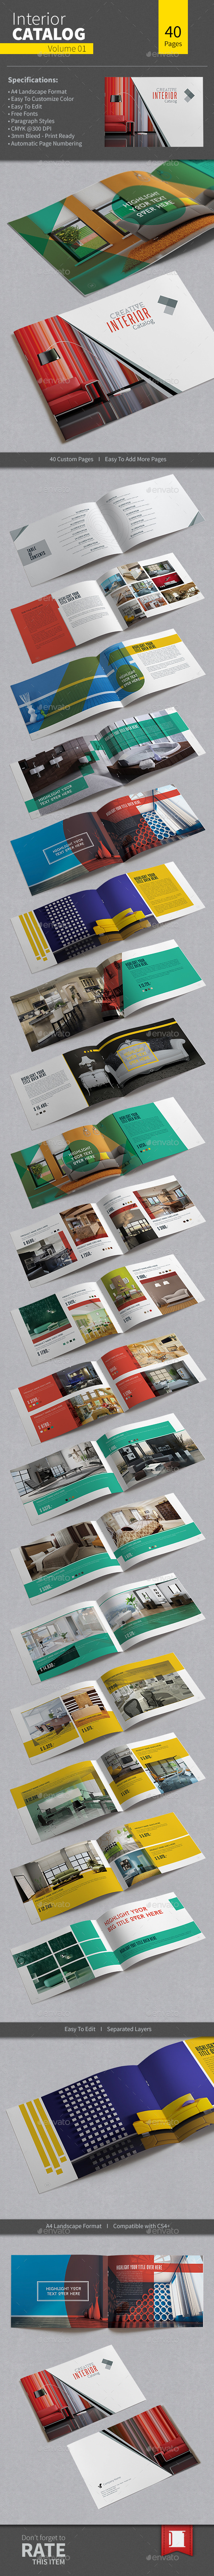 GraphicRiver Interior Catalog Volume 01 9288087